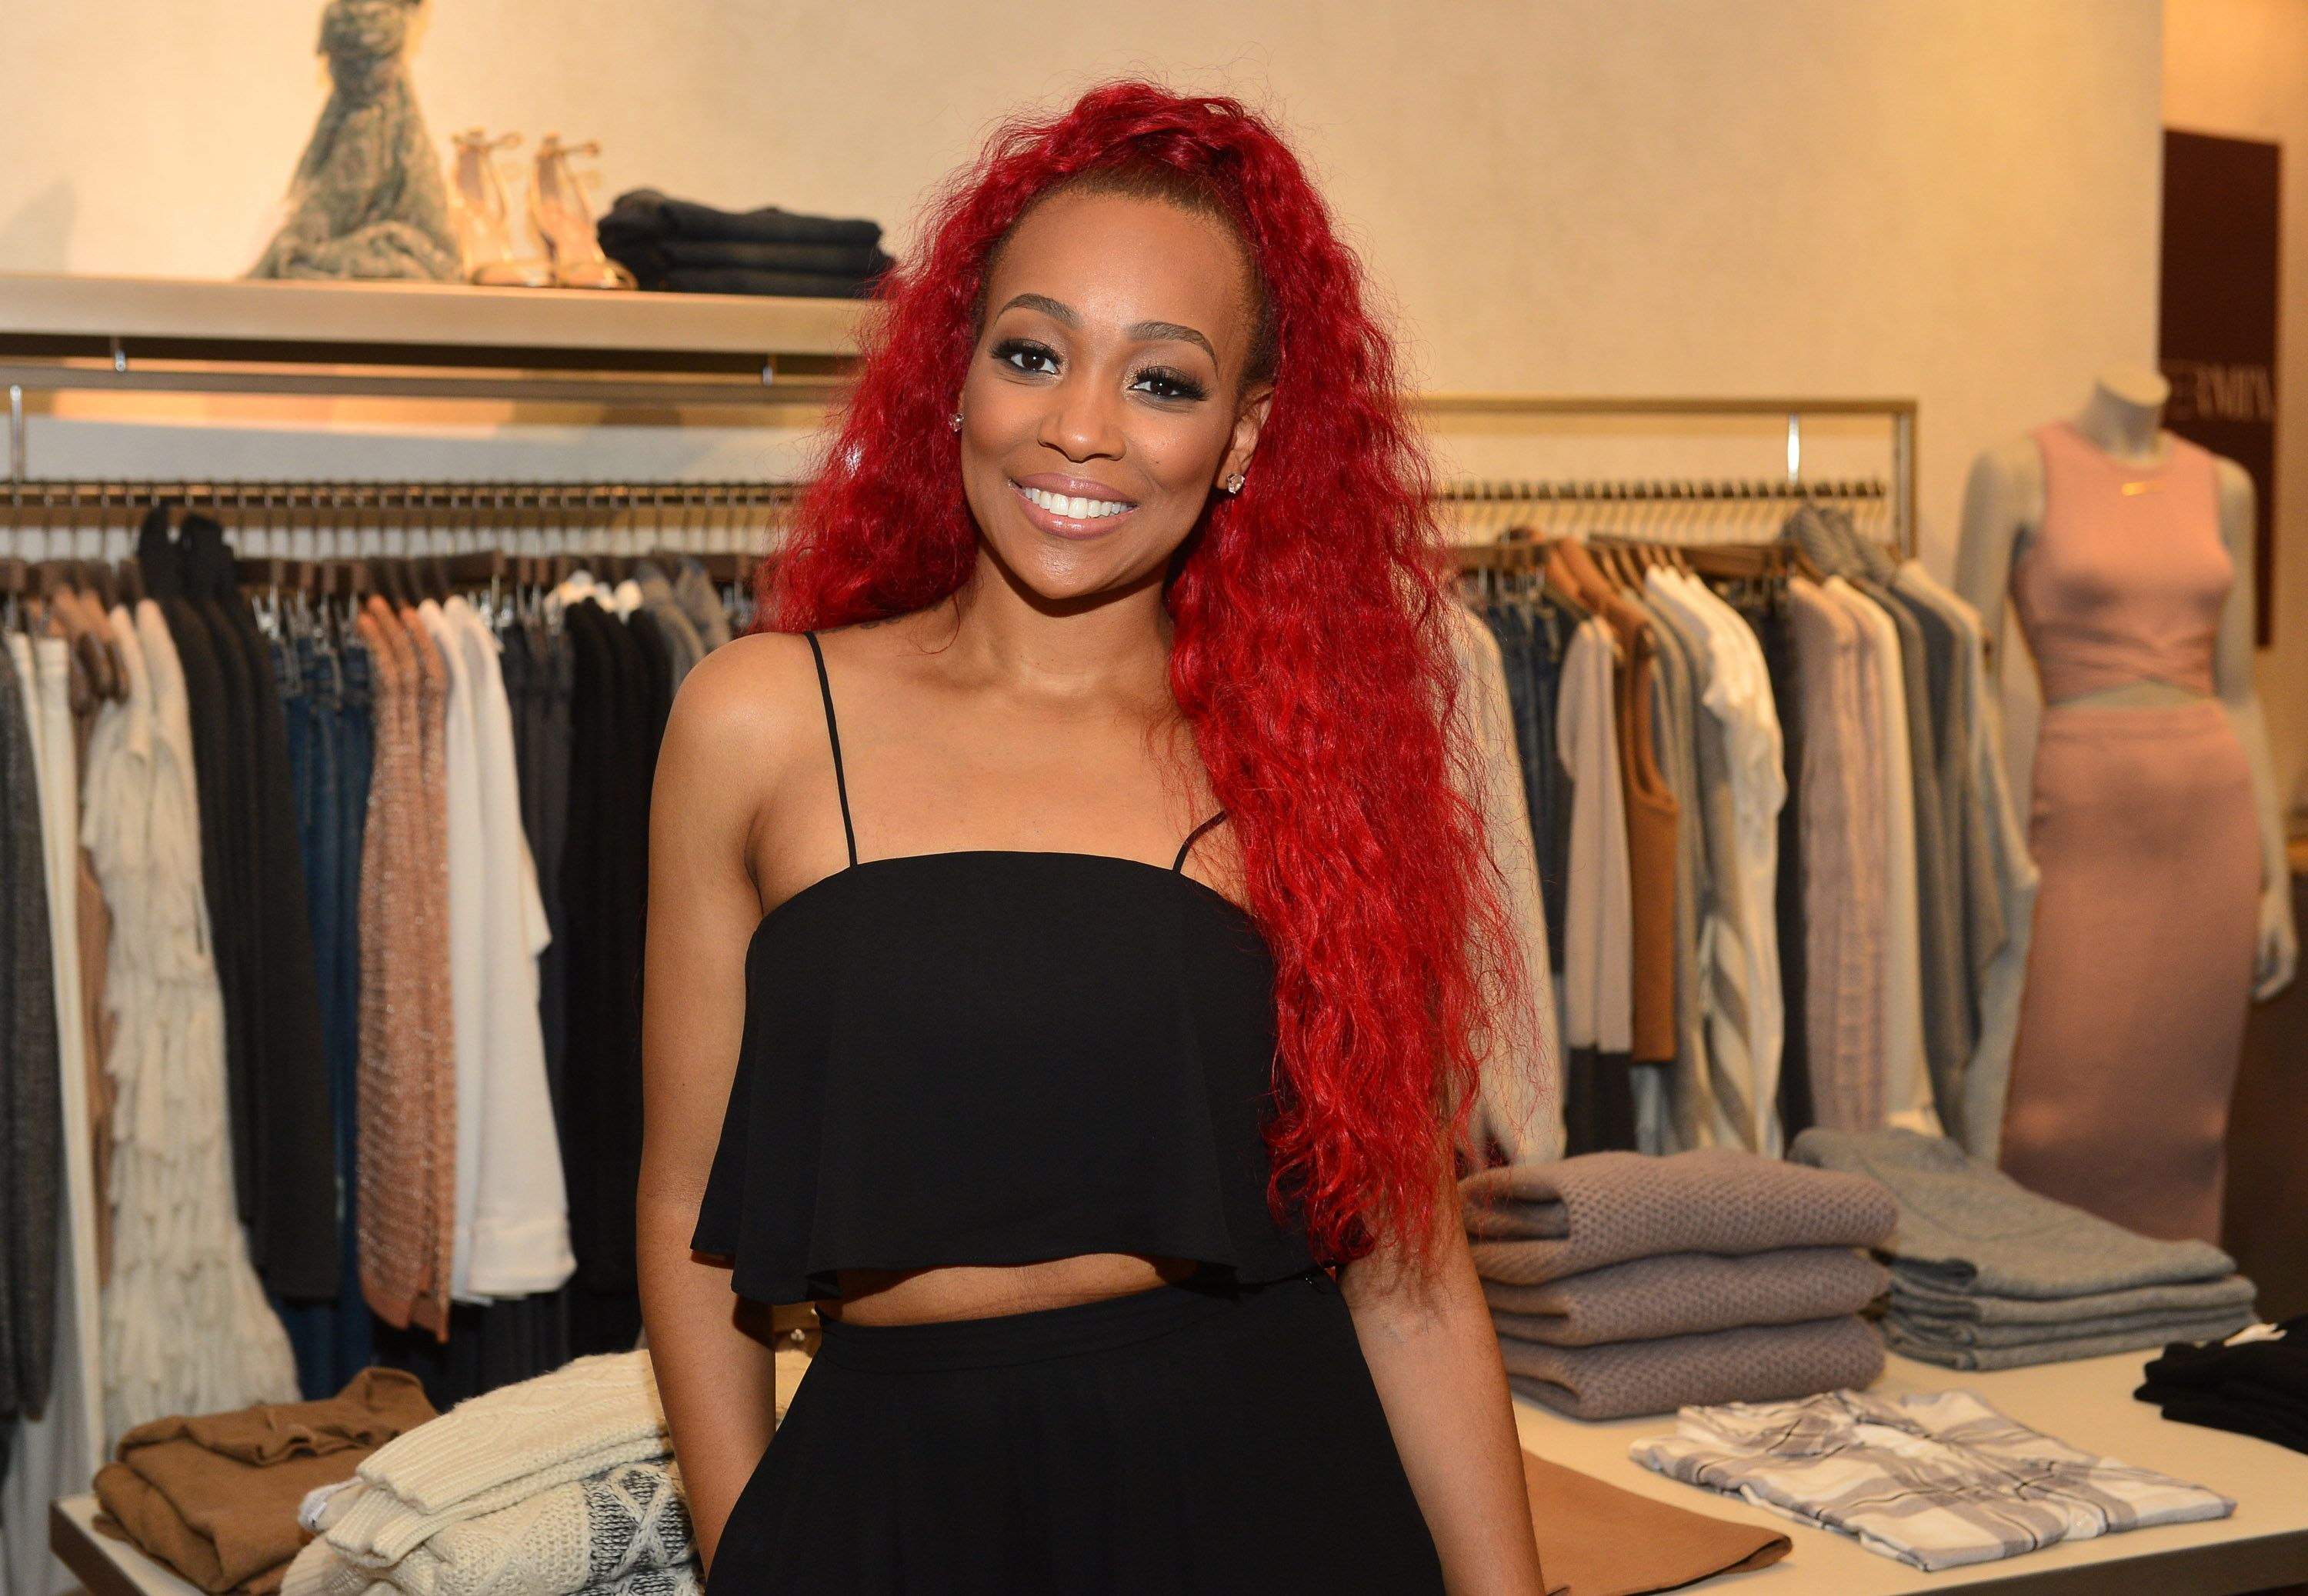 ATLANTA, GA - OCTOBER 22: (EXCLUSIVE COVERAGE)   Monica Brown attends Unspoken Angels Charity Event For Domestic Violence Awareness Month at Intermix Buckhead on October 22, 2015 in Atlanta, Georgia.  (Photo by Prince Williams/WireImage)